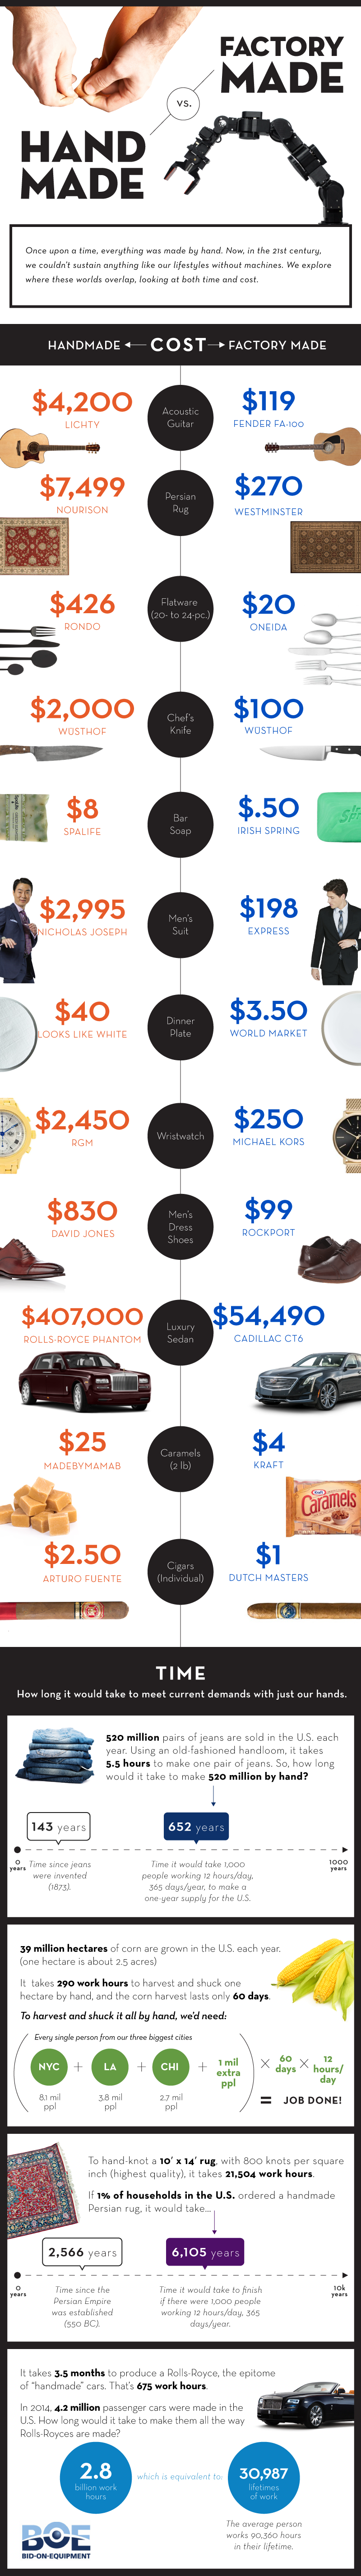 Handmade vs. Factory Made: An Infographic Comparing Time & Cost